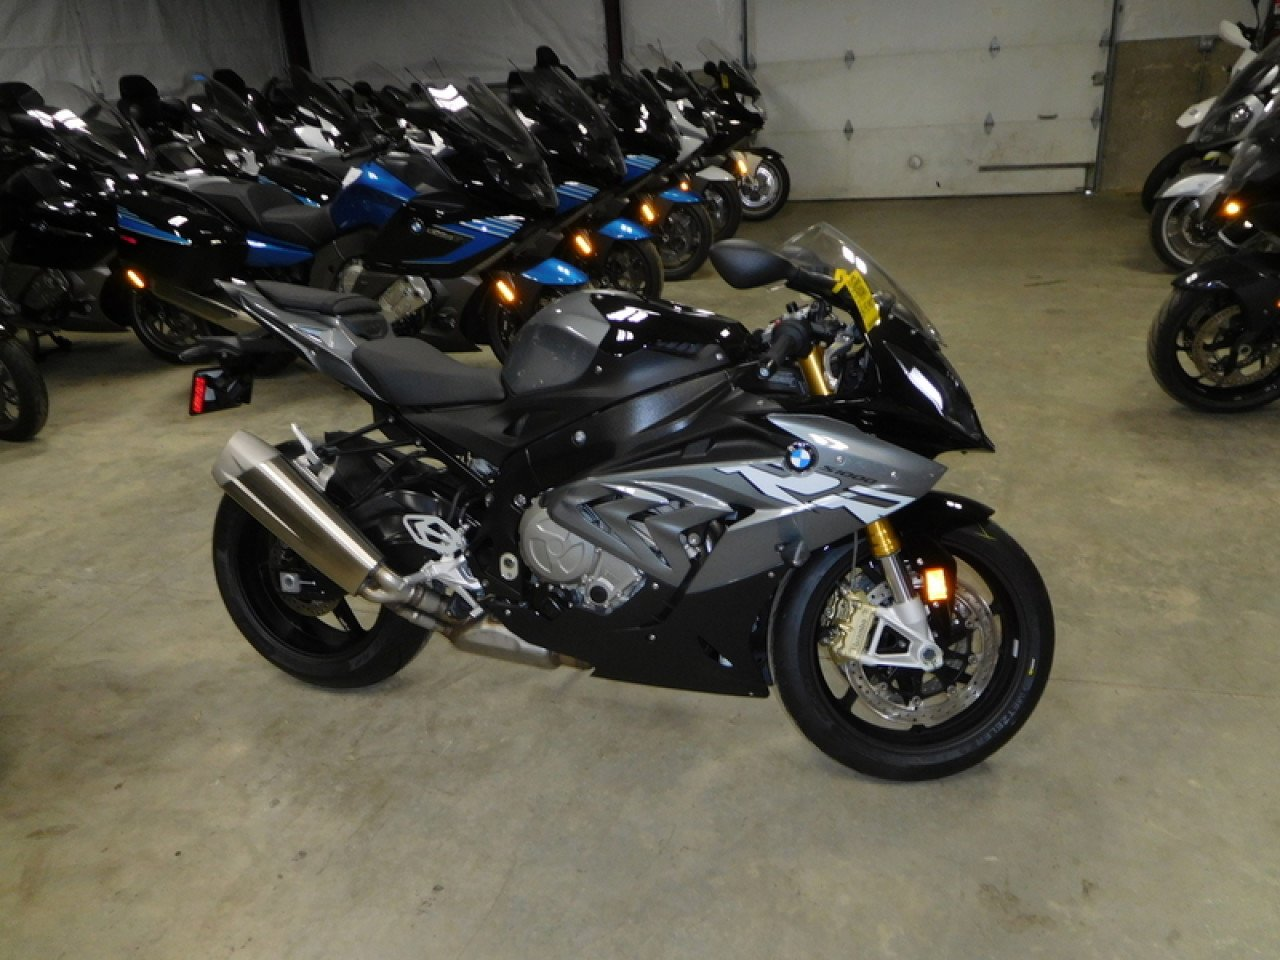 Bmw S1000rr For Sale >> 2017 Bmw S1000rr Motorcycles For Sale Motorcycles On Autotrader